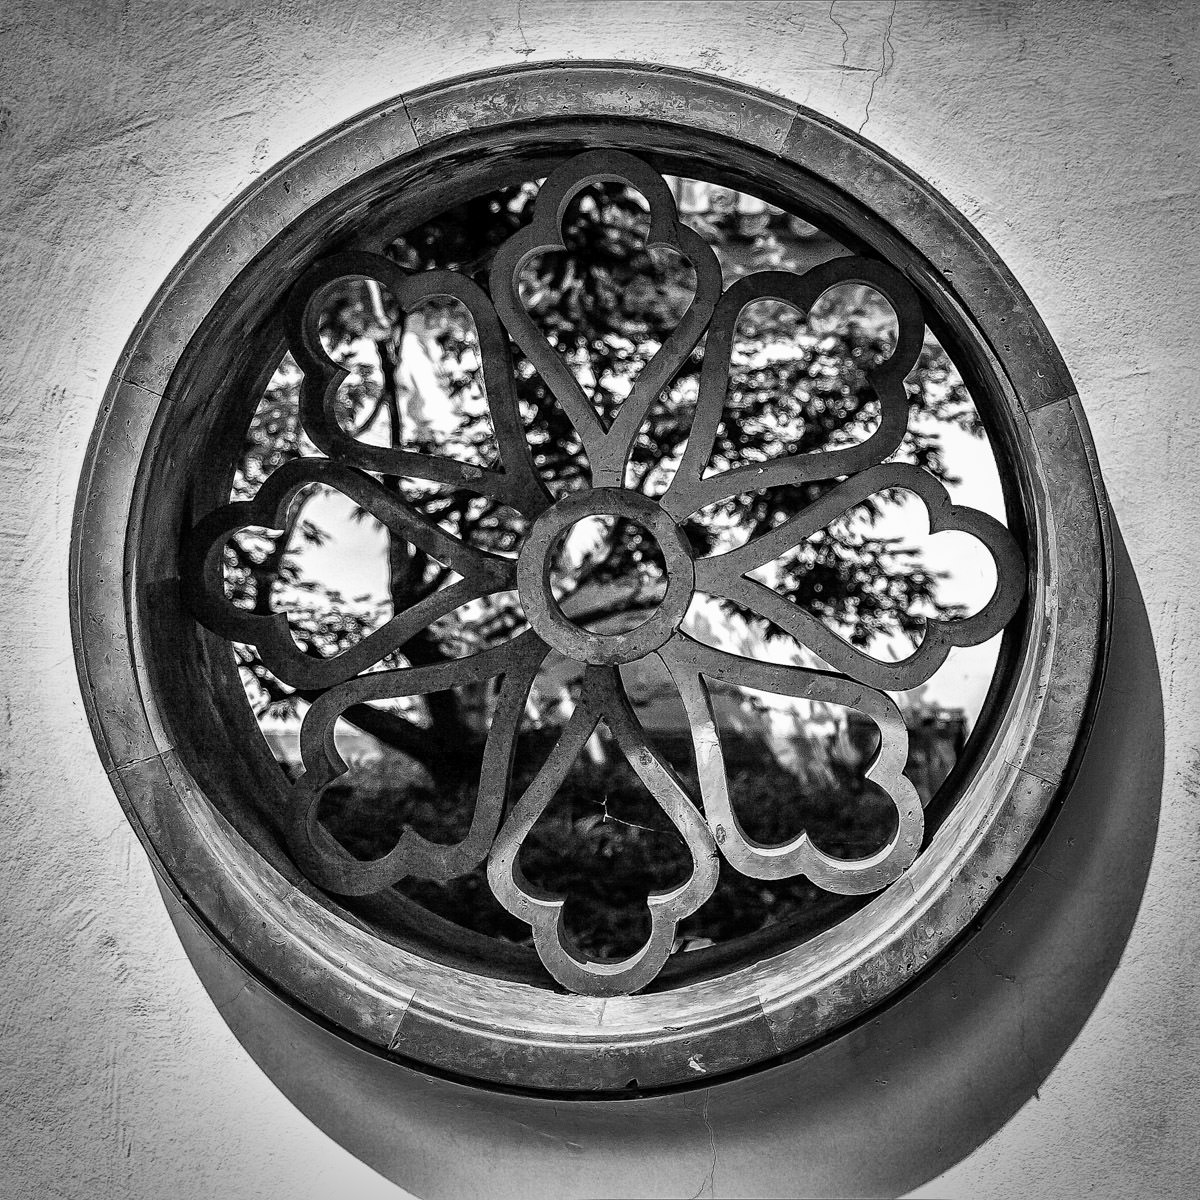 An ornate window between two gardens at Montréal's Jardin Botanique.